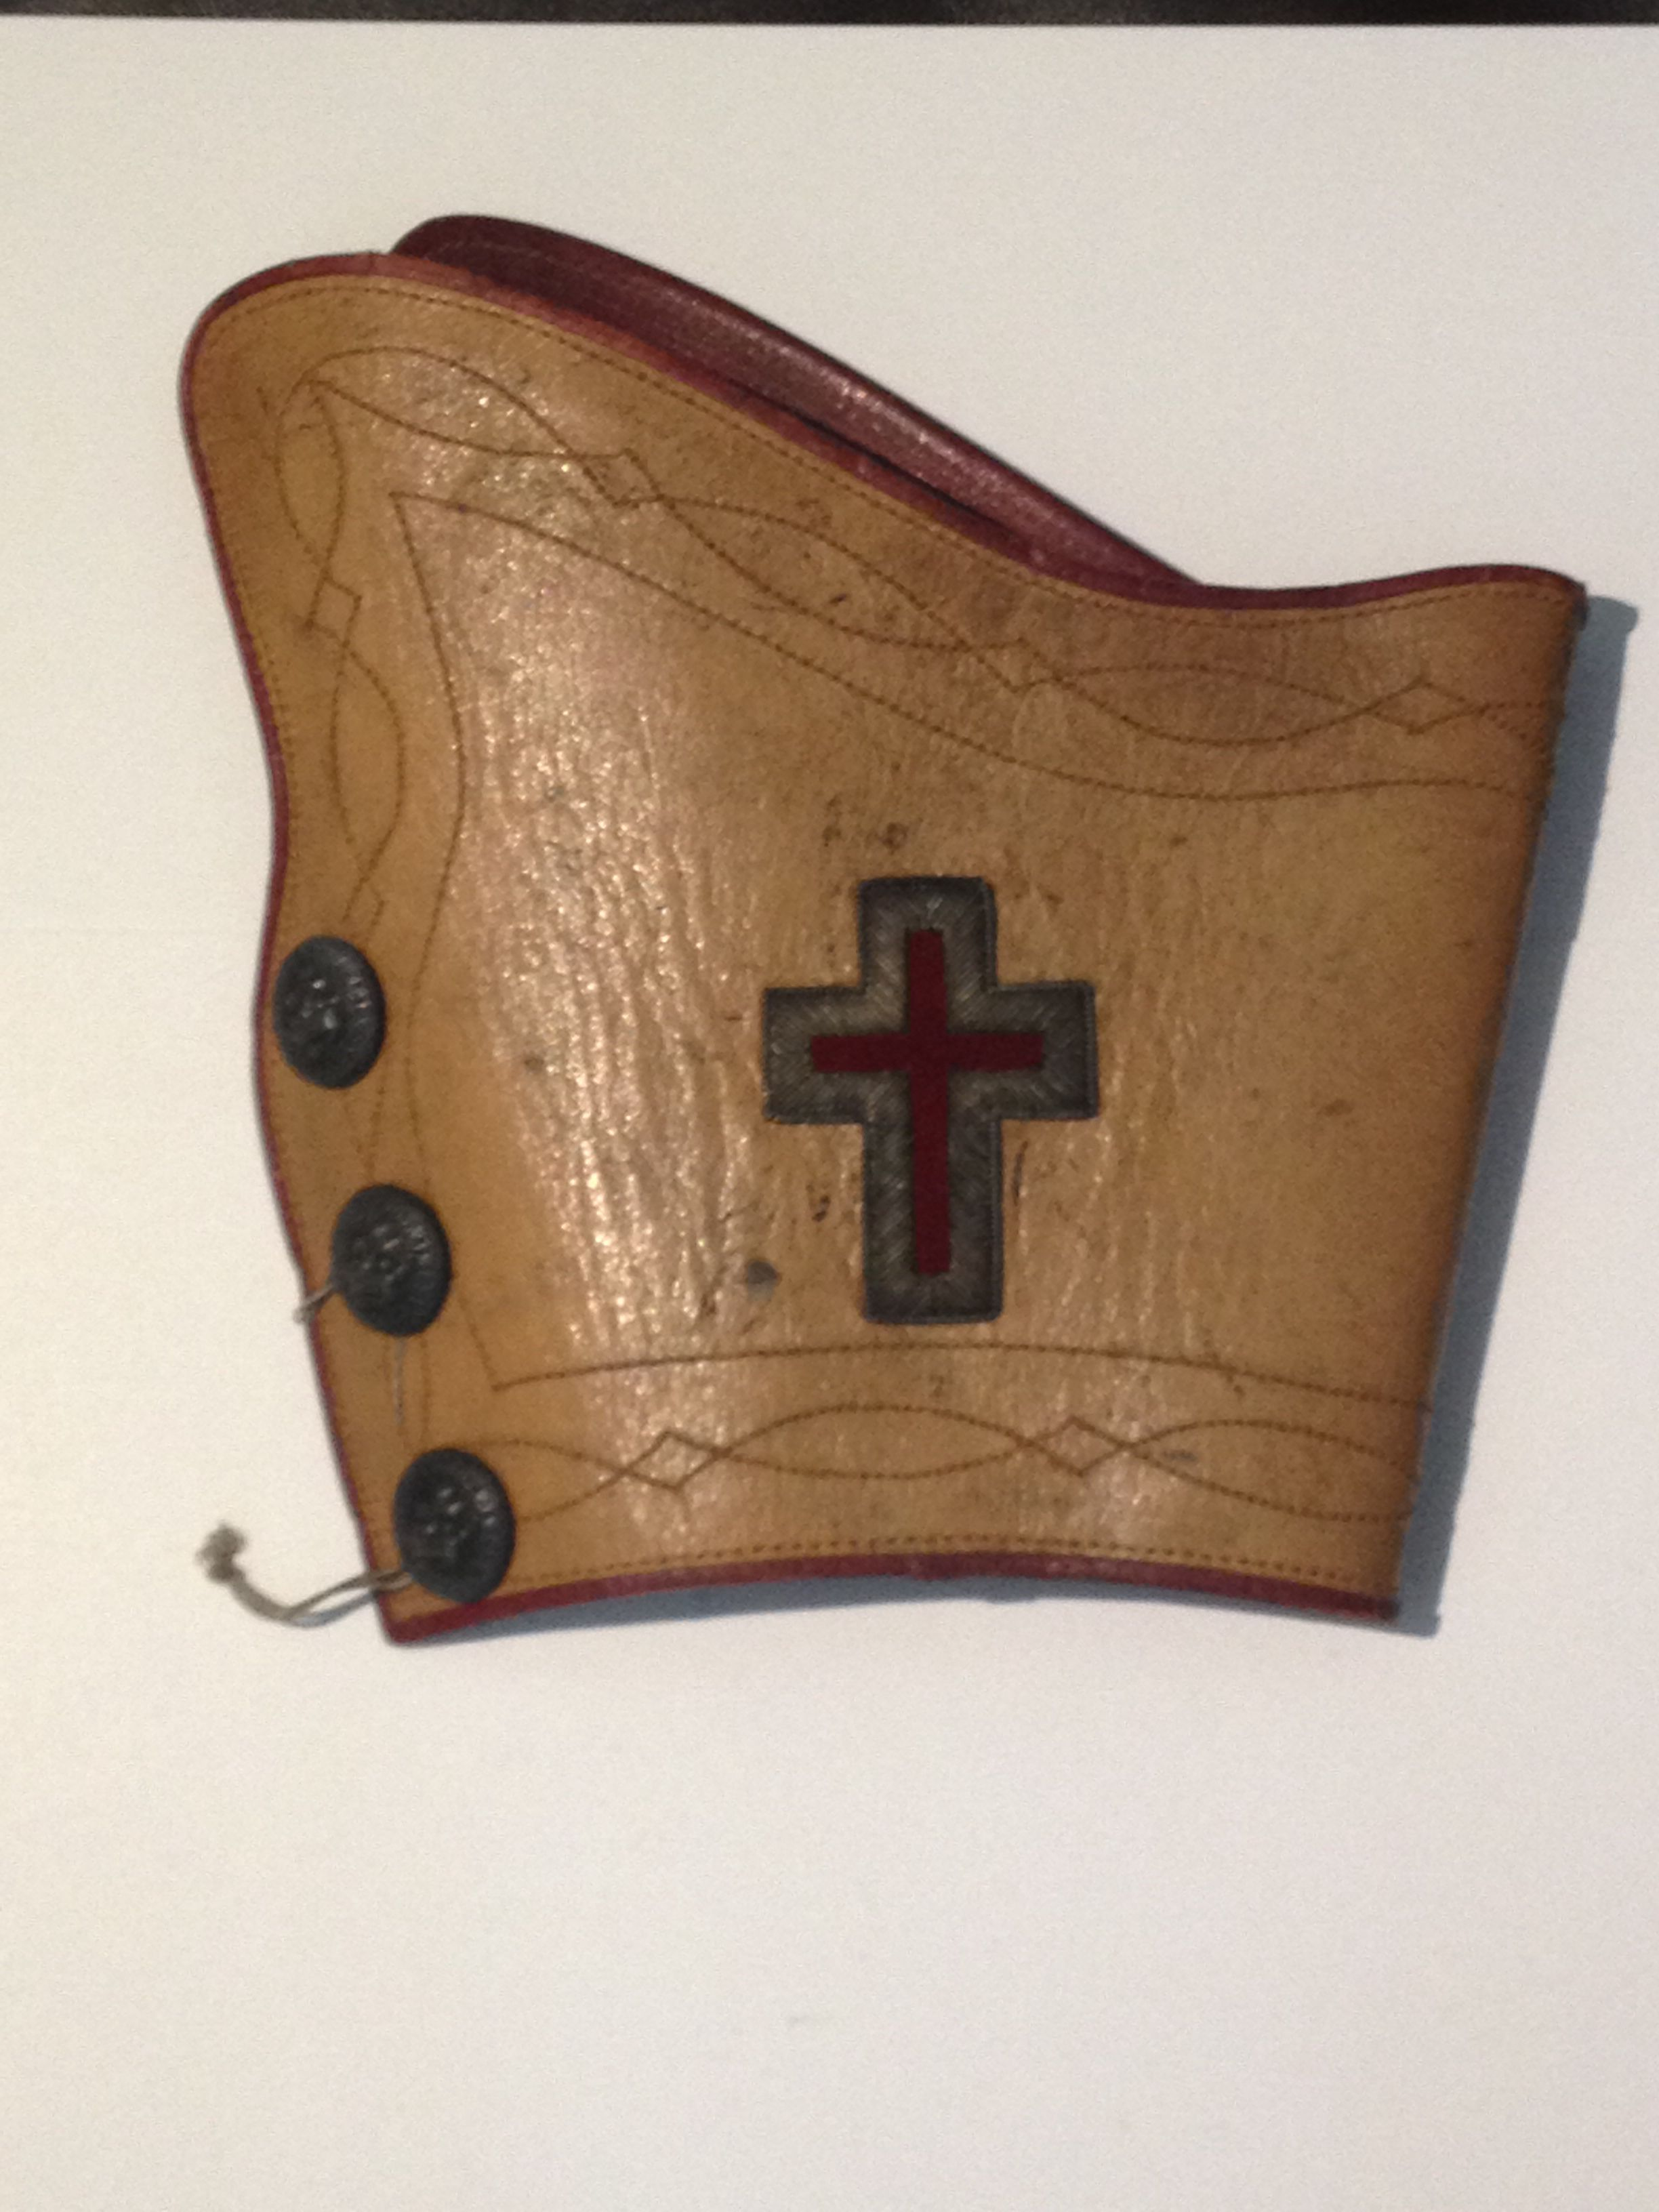 a leather knights templar cuff from the early 1800s originally white